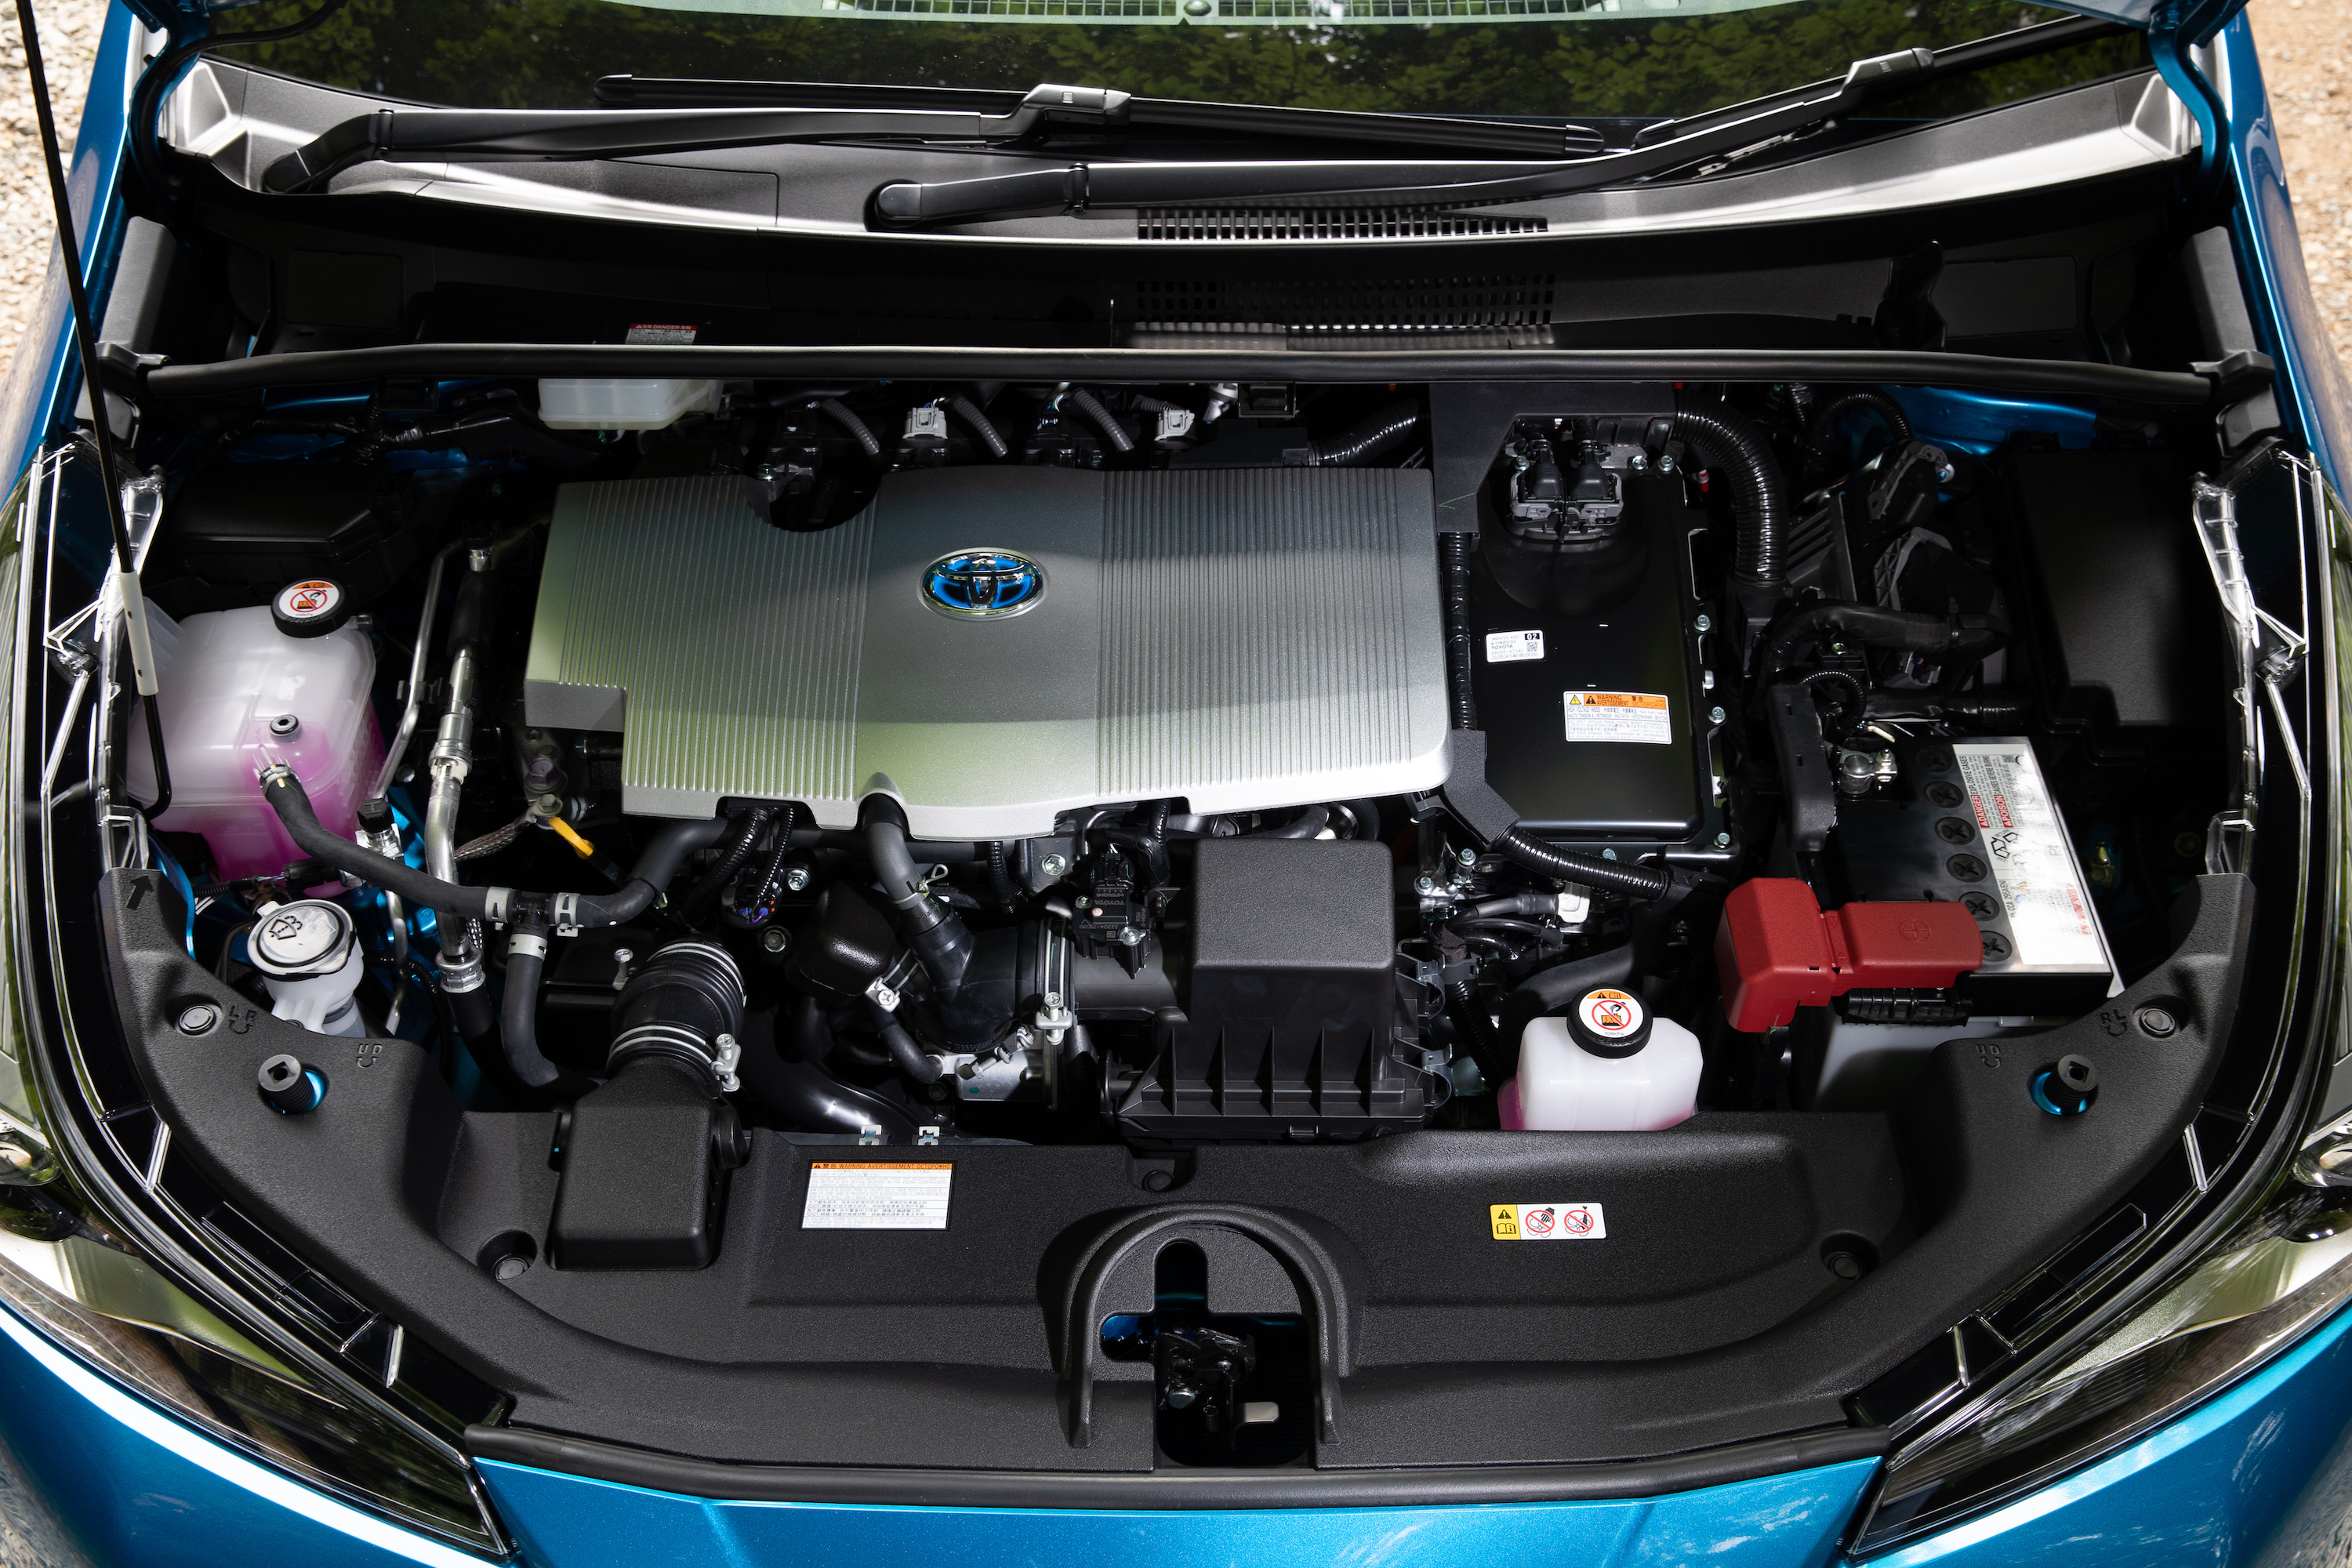 A 1.8-litre petrol engine is linked to electric motors